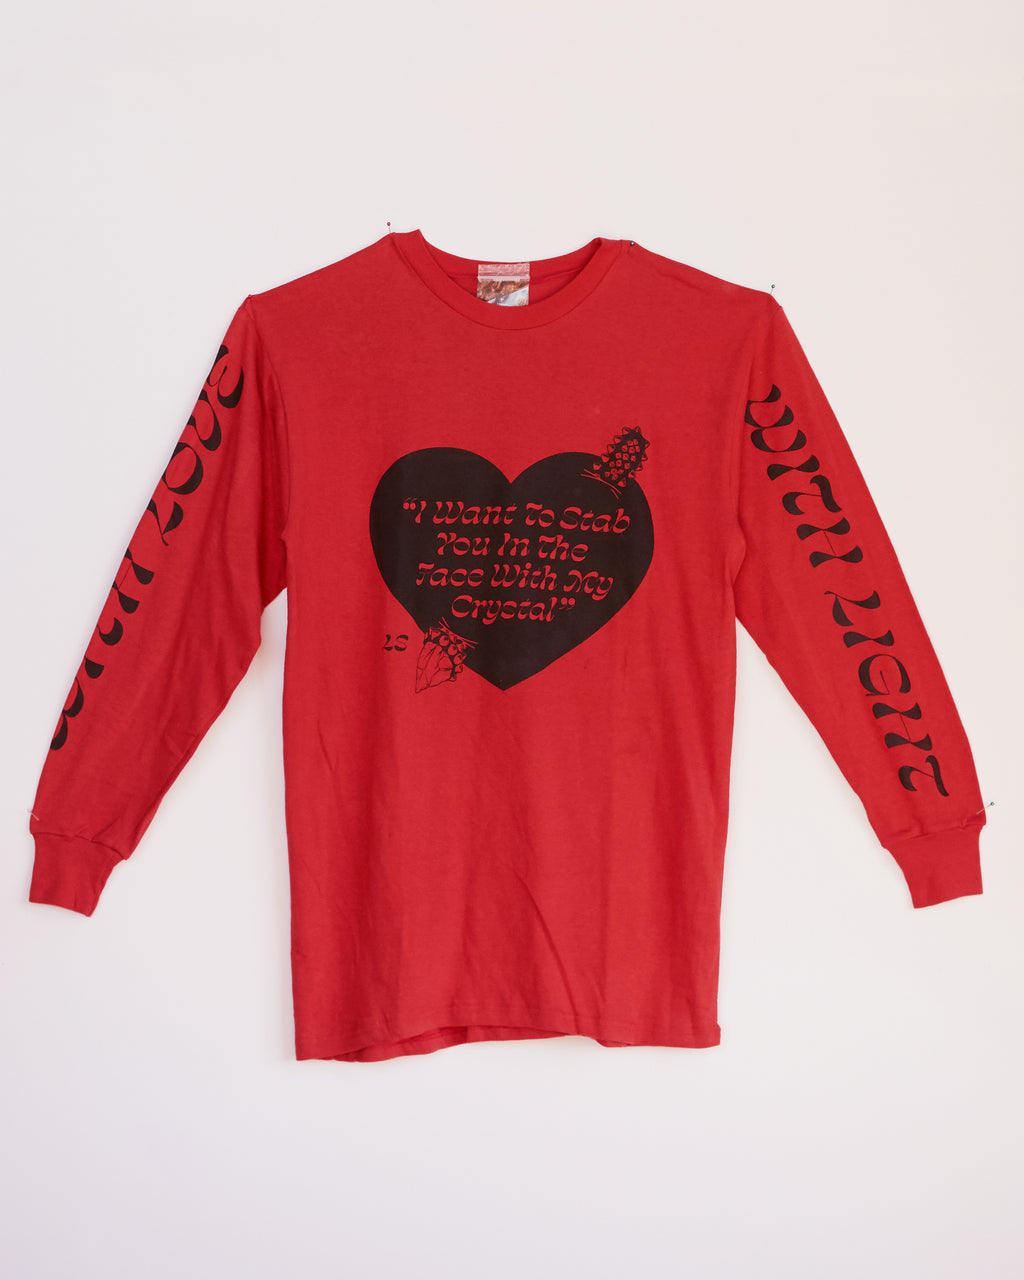 IWTSYITFWMC RED LONG SLEEVE - S